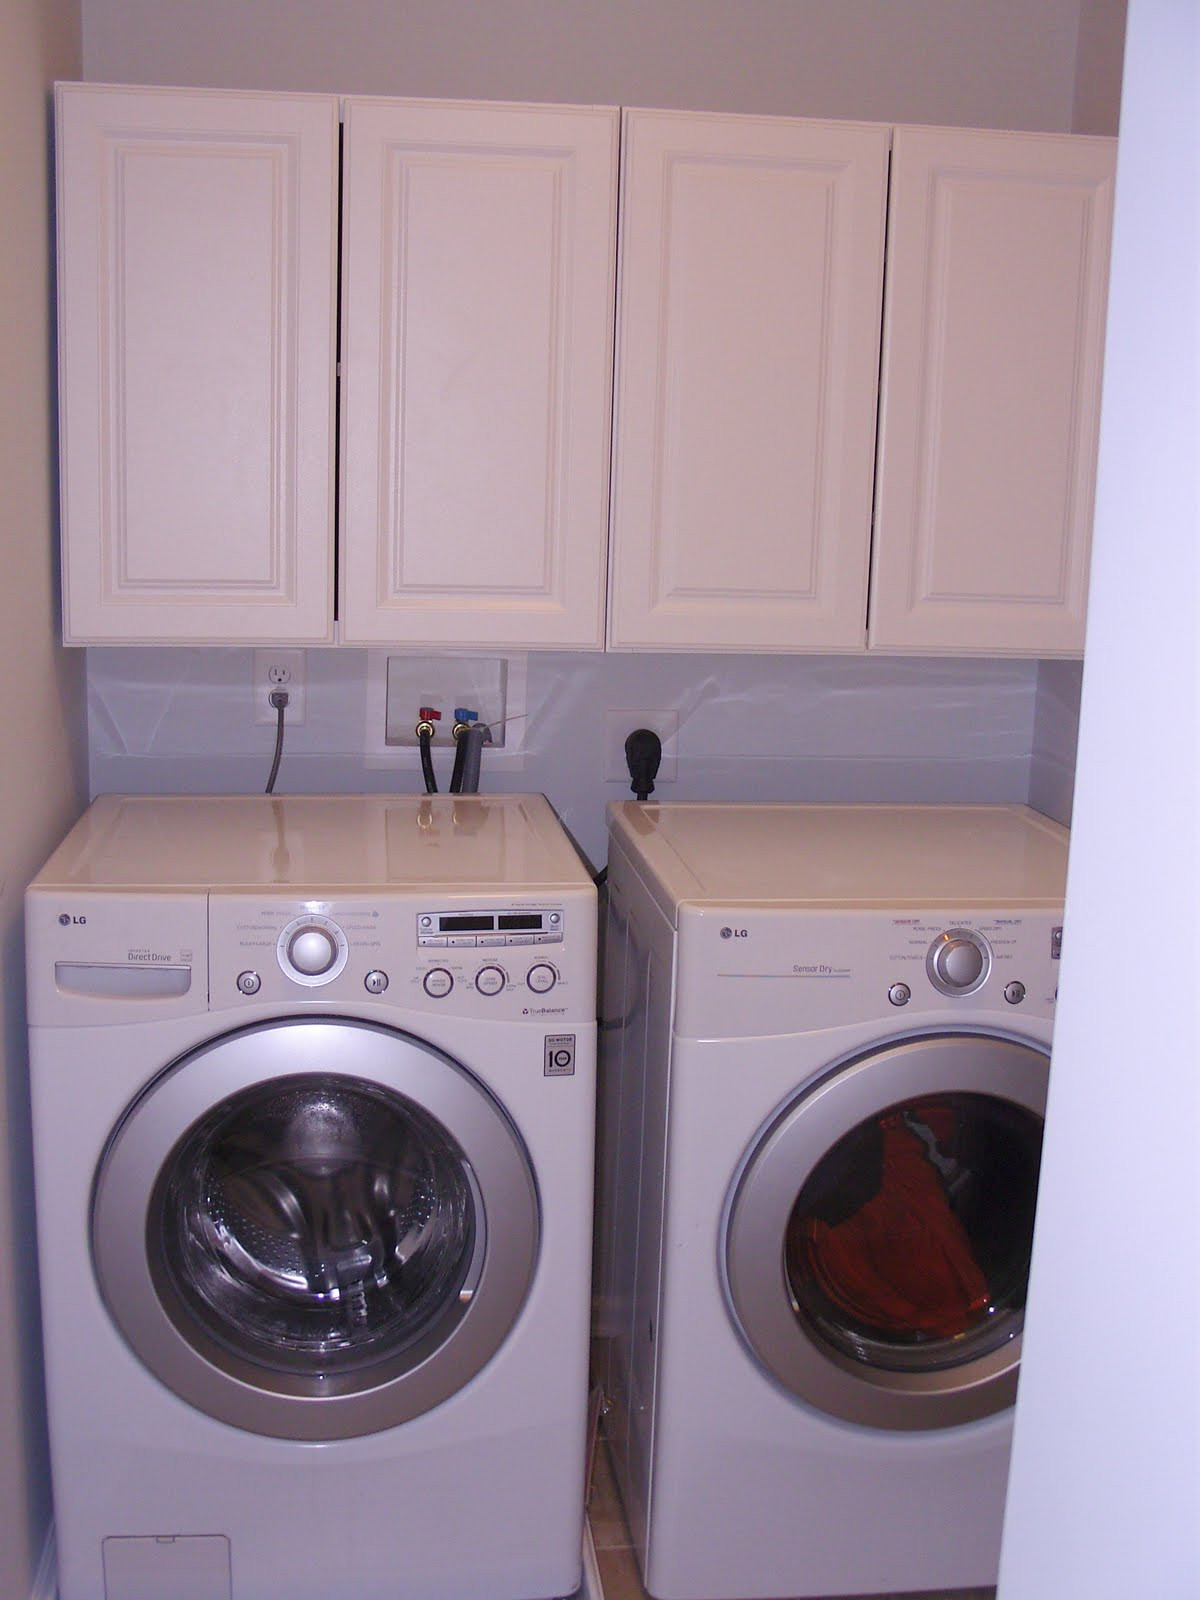 Best ideas about Laundry Room Cabinets Home Depot . Save or Pin Our 1st New Home Building a Ryan Homes Milan Laundry Now.